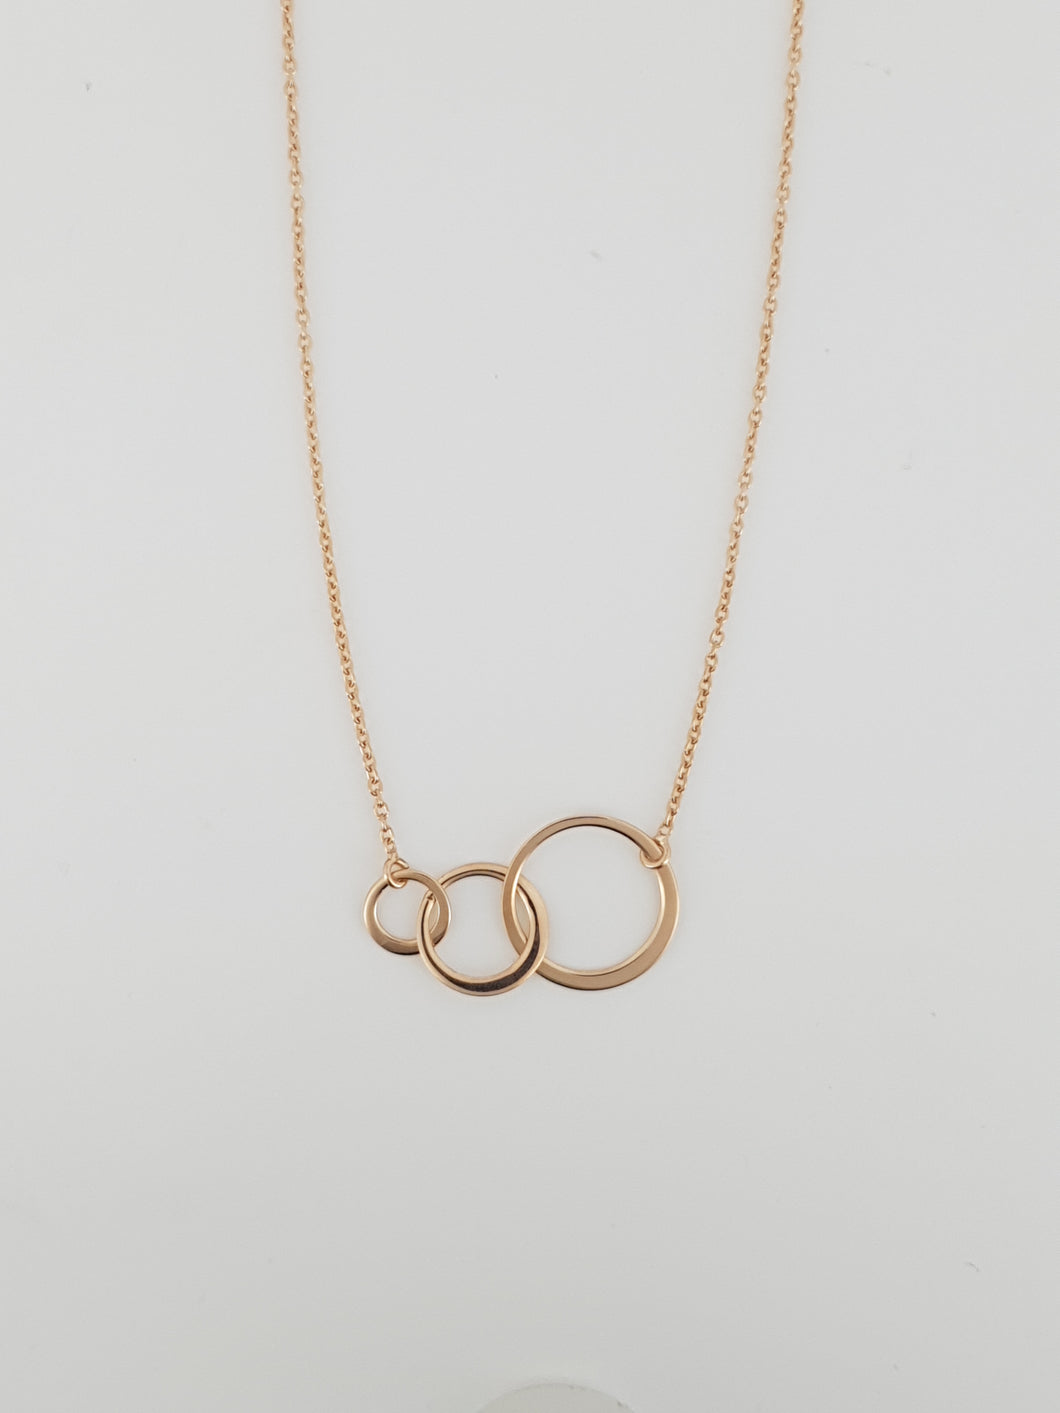 ROSE GOLD CIRCLE GENERATION NECKLACE